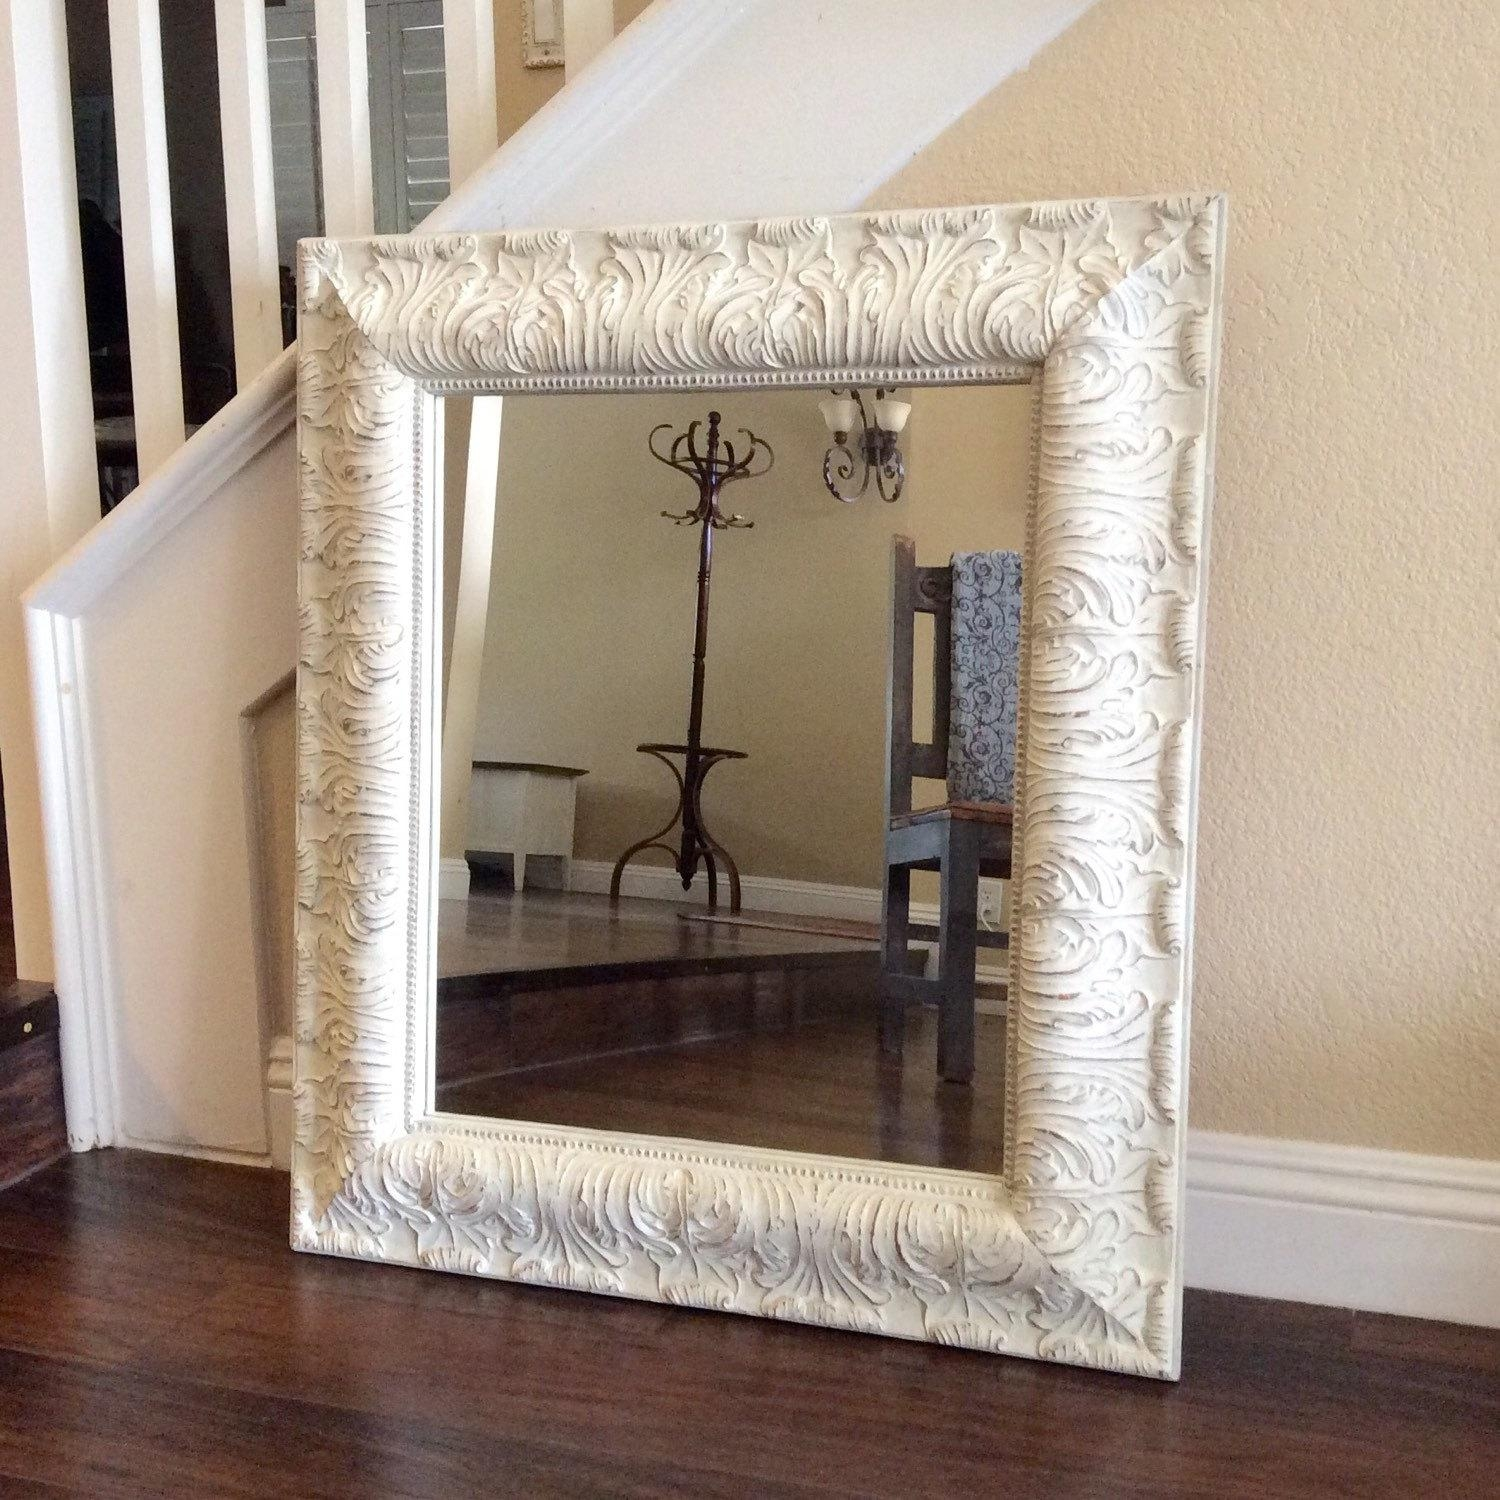 Fabulous Large Mirror White Vanity Mirror Shabby Chic Mirror Regarding Large Shabby Chic Mirror White (Image 9 of 20)